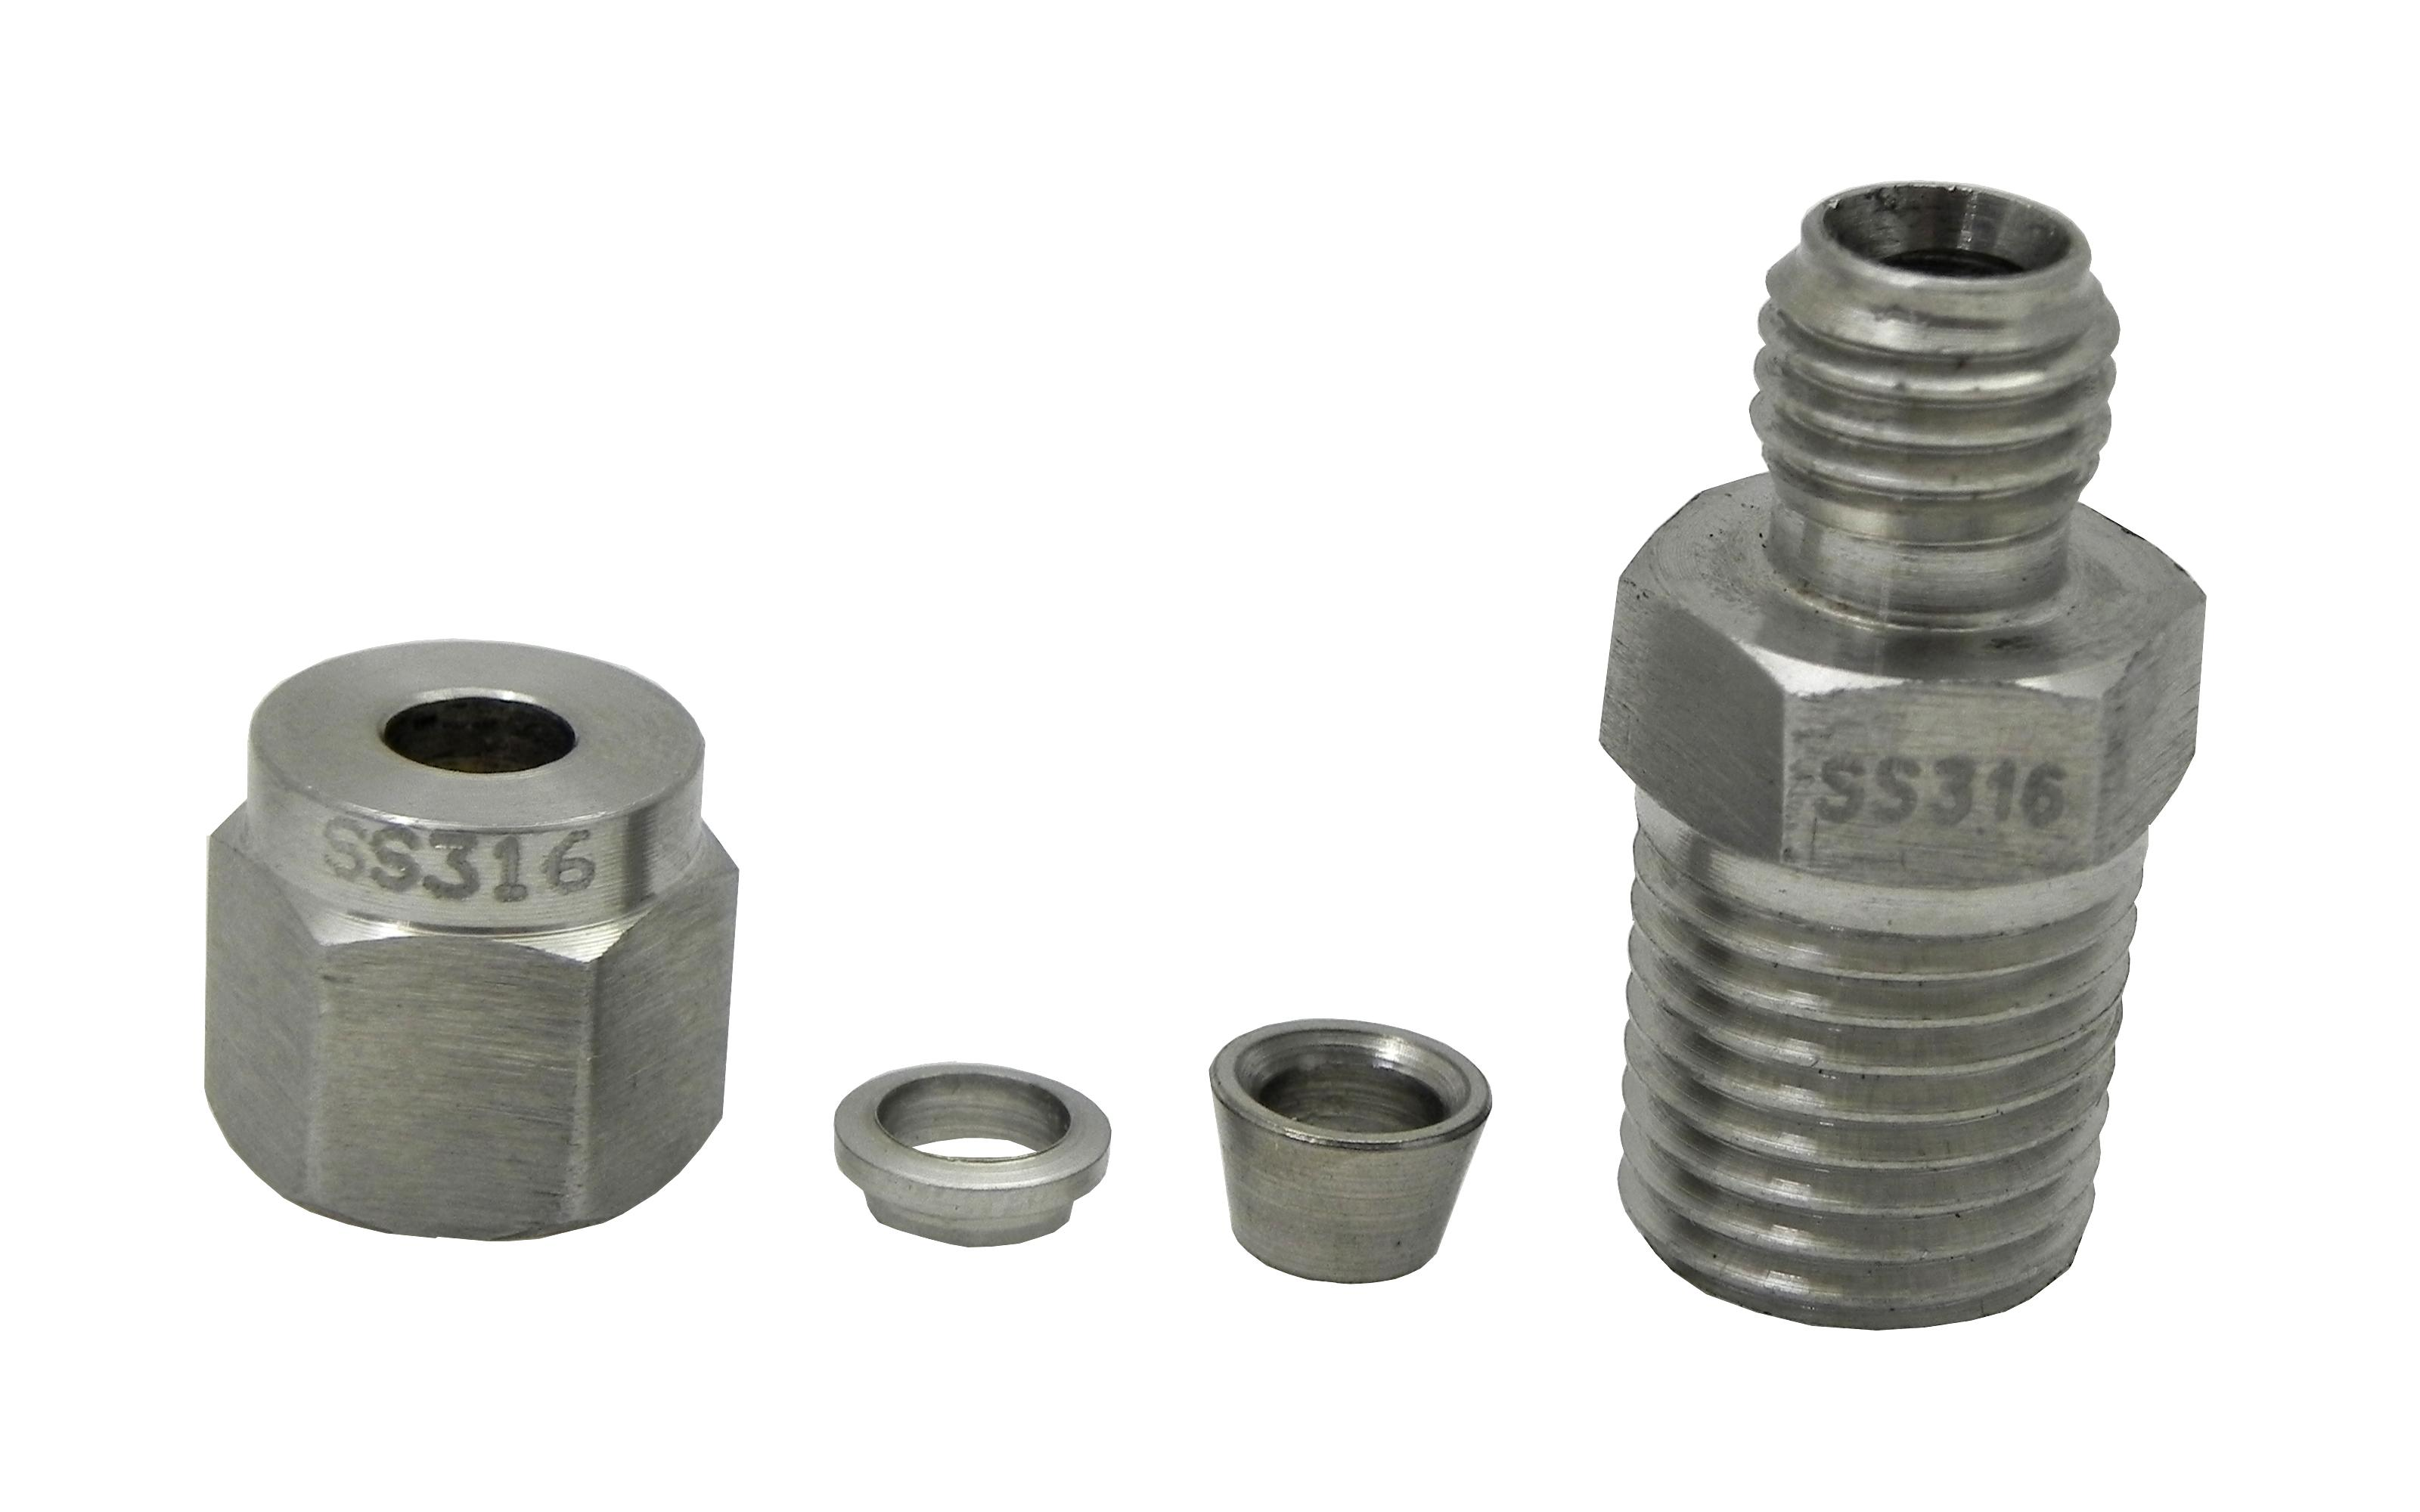 Egt probe compression fittings quot npt thread